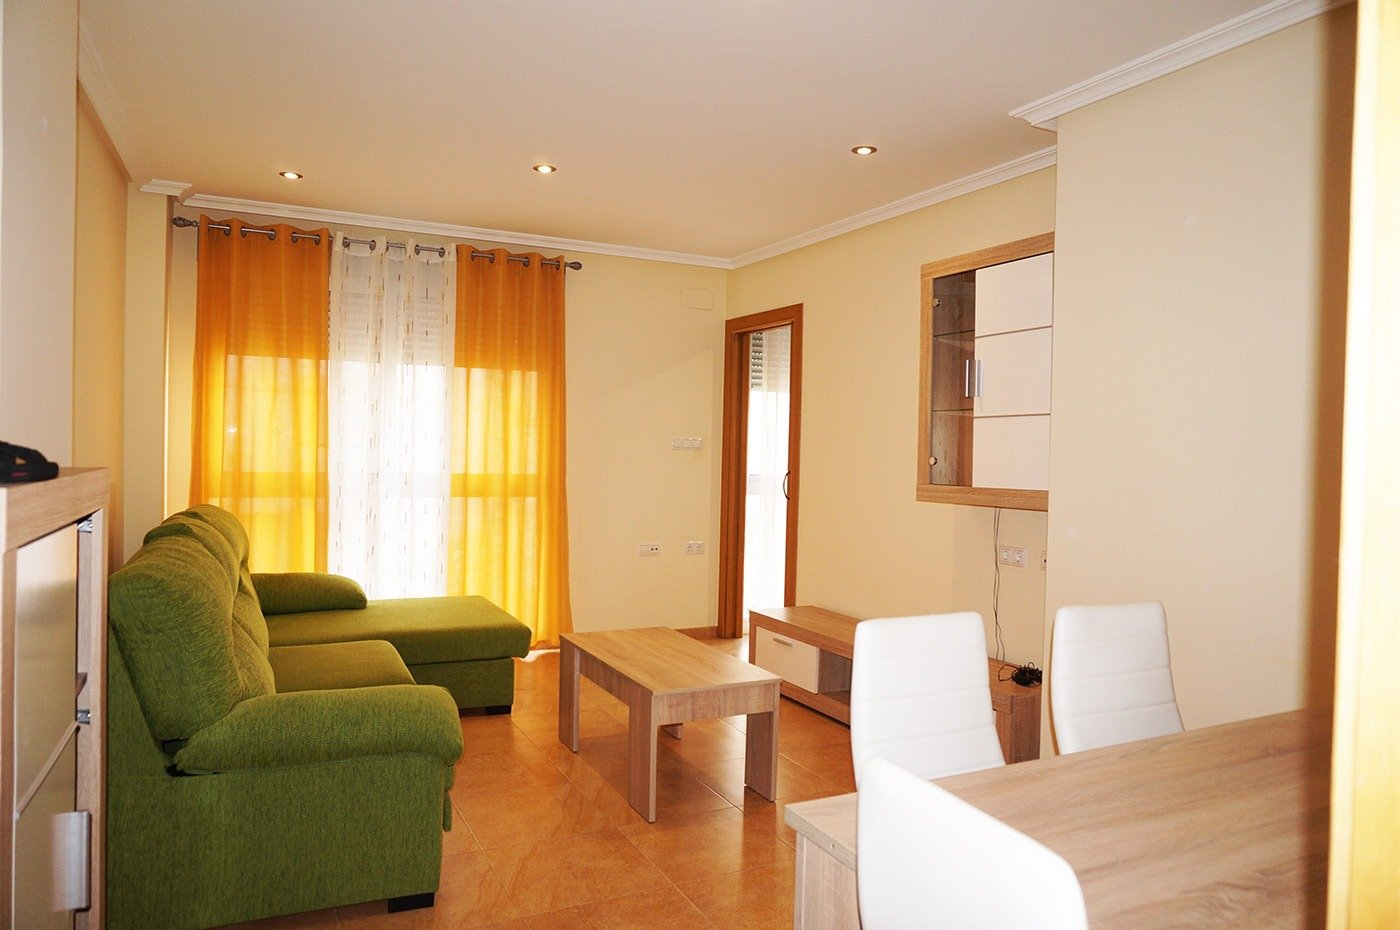 Flat for rent in Centro, Elche